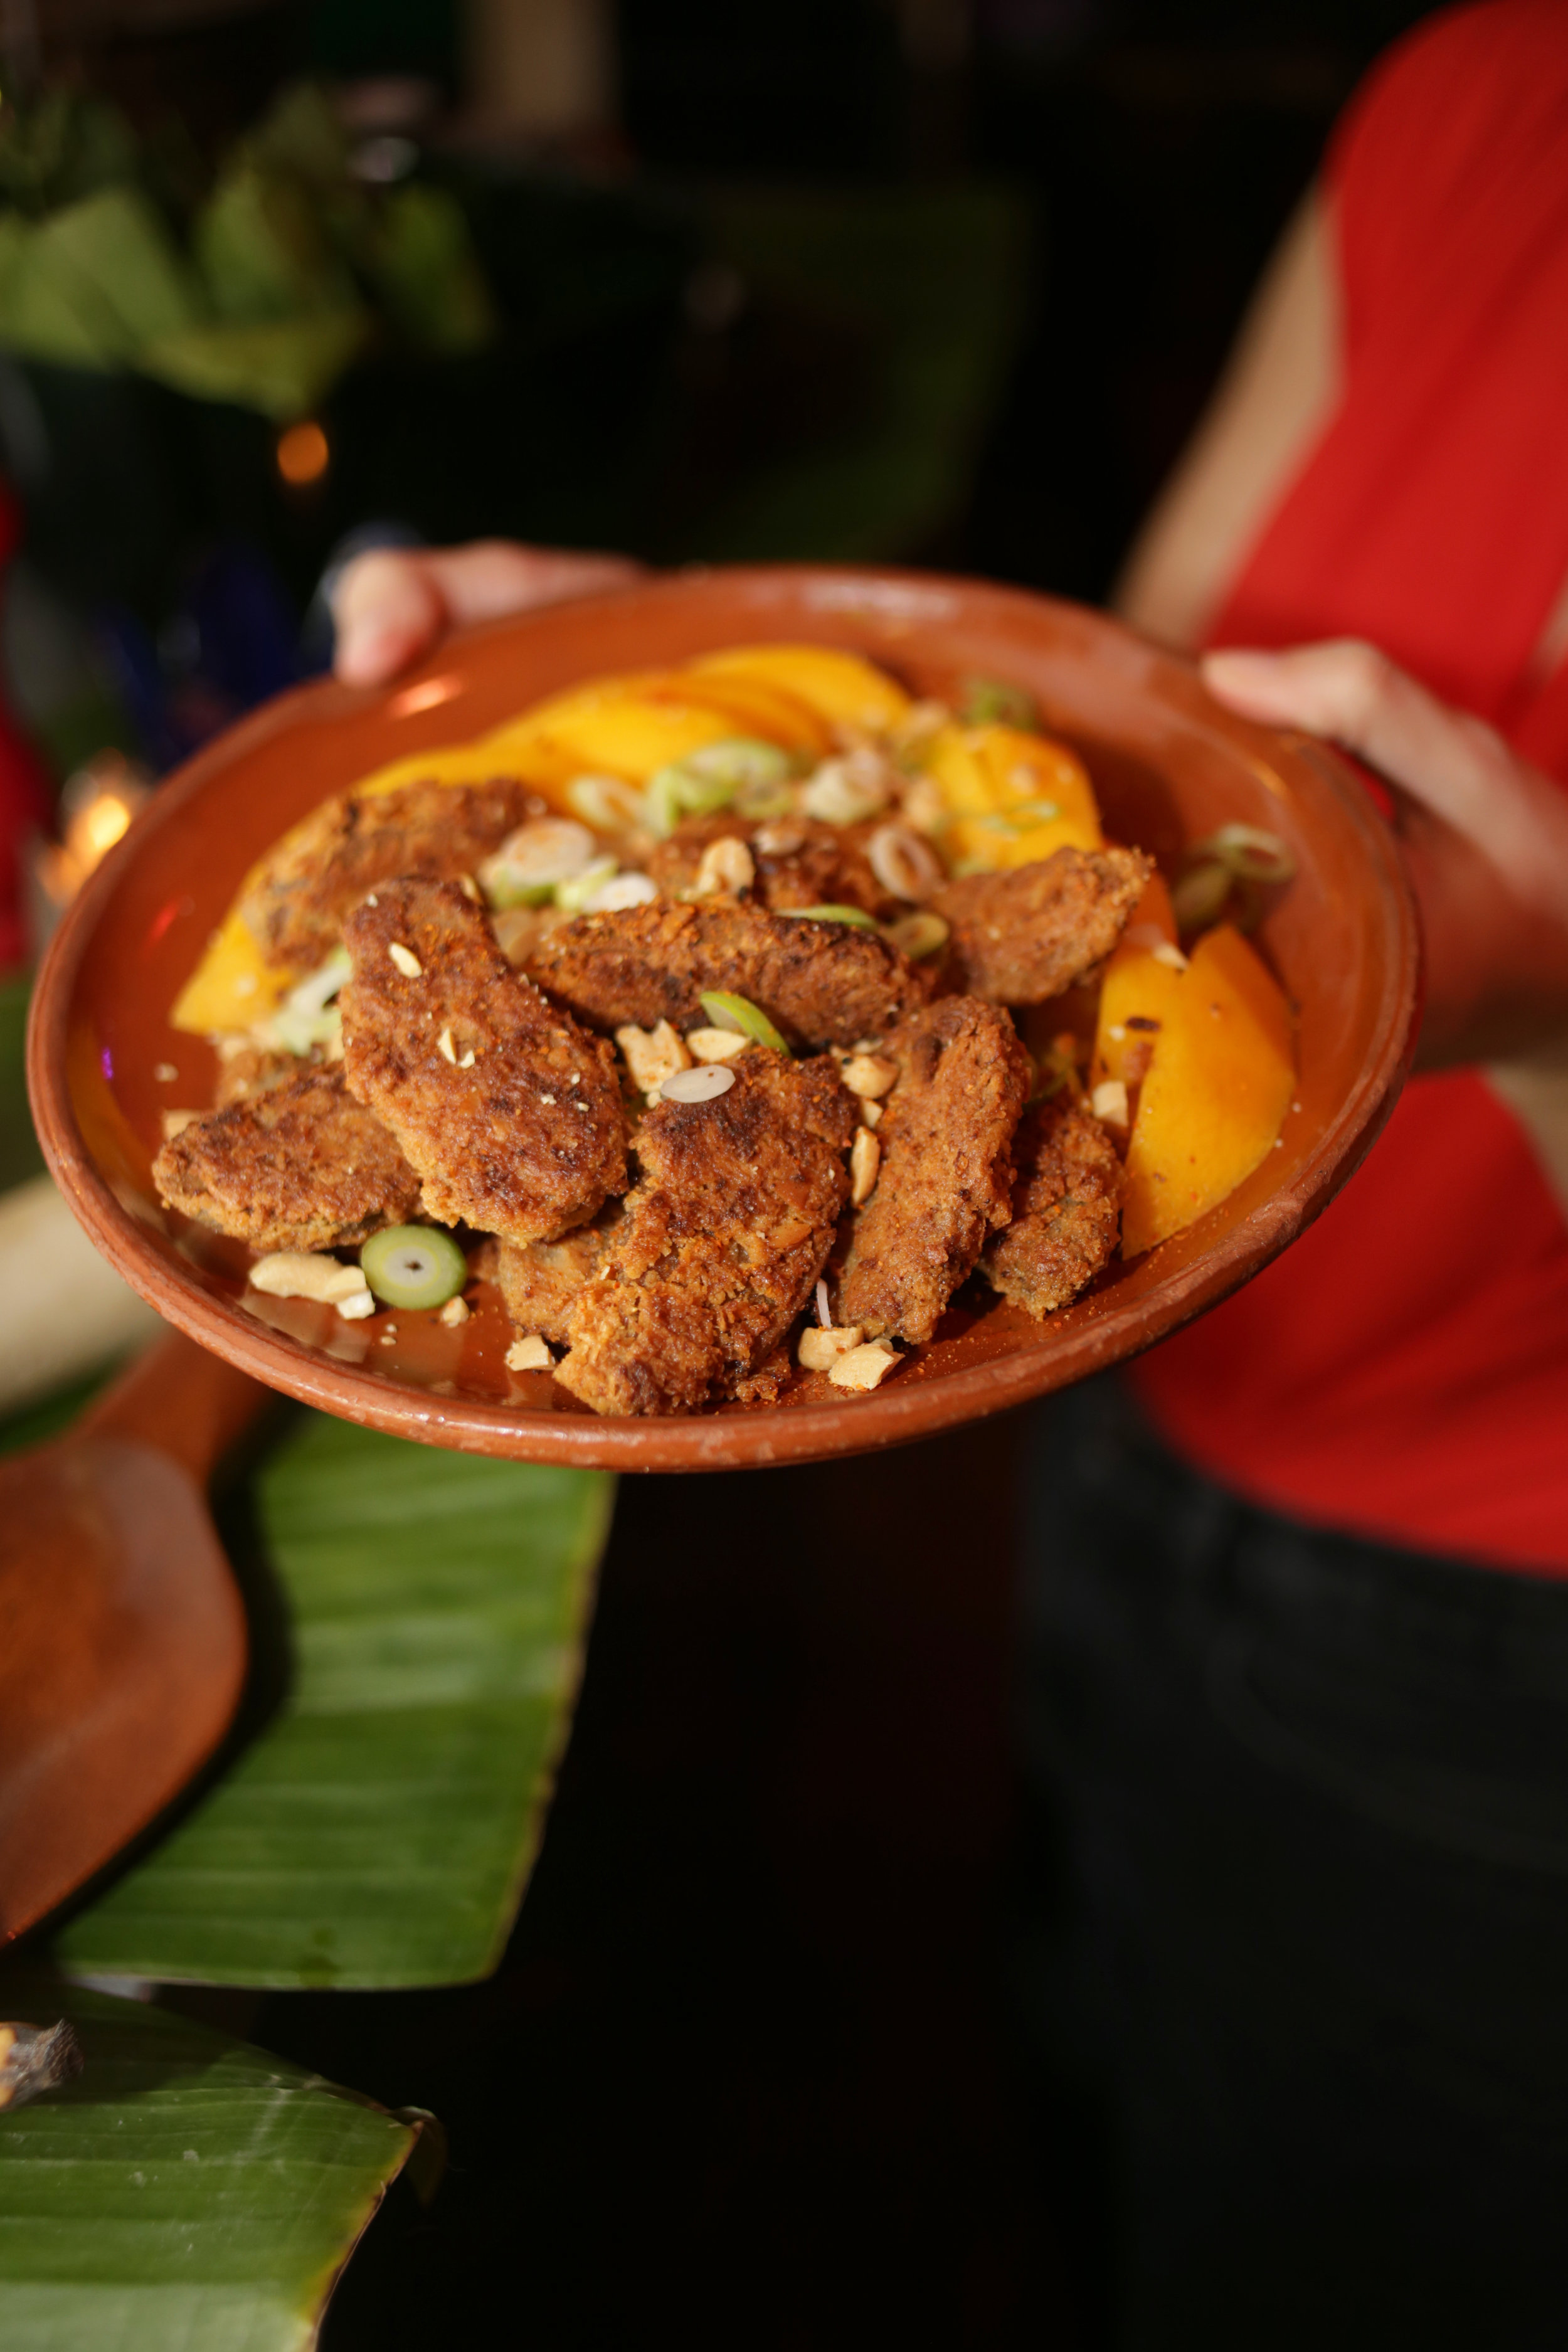 Coconut-fried Seitan for our vegan guests